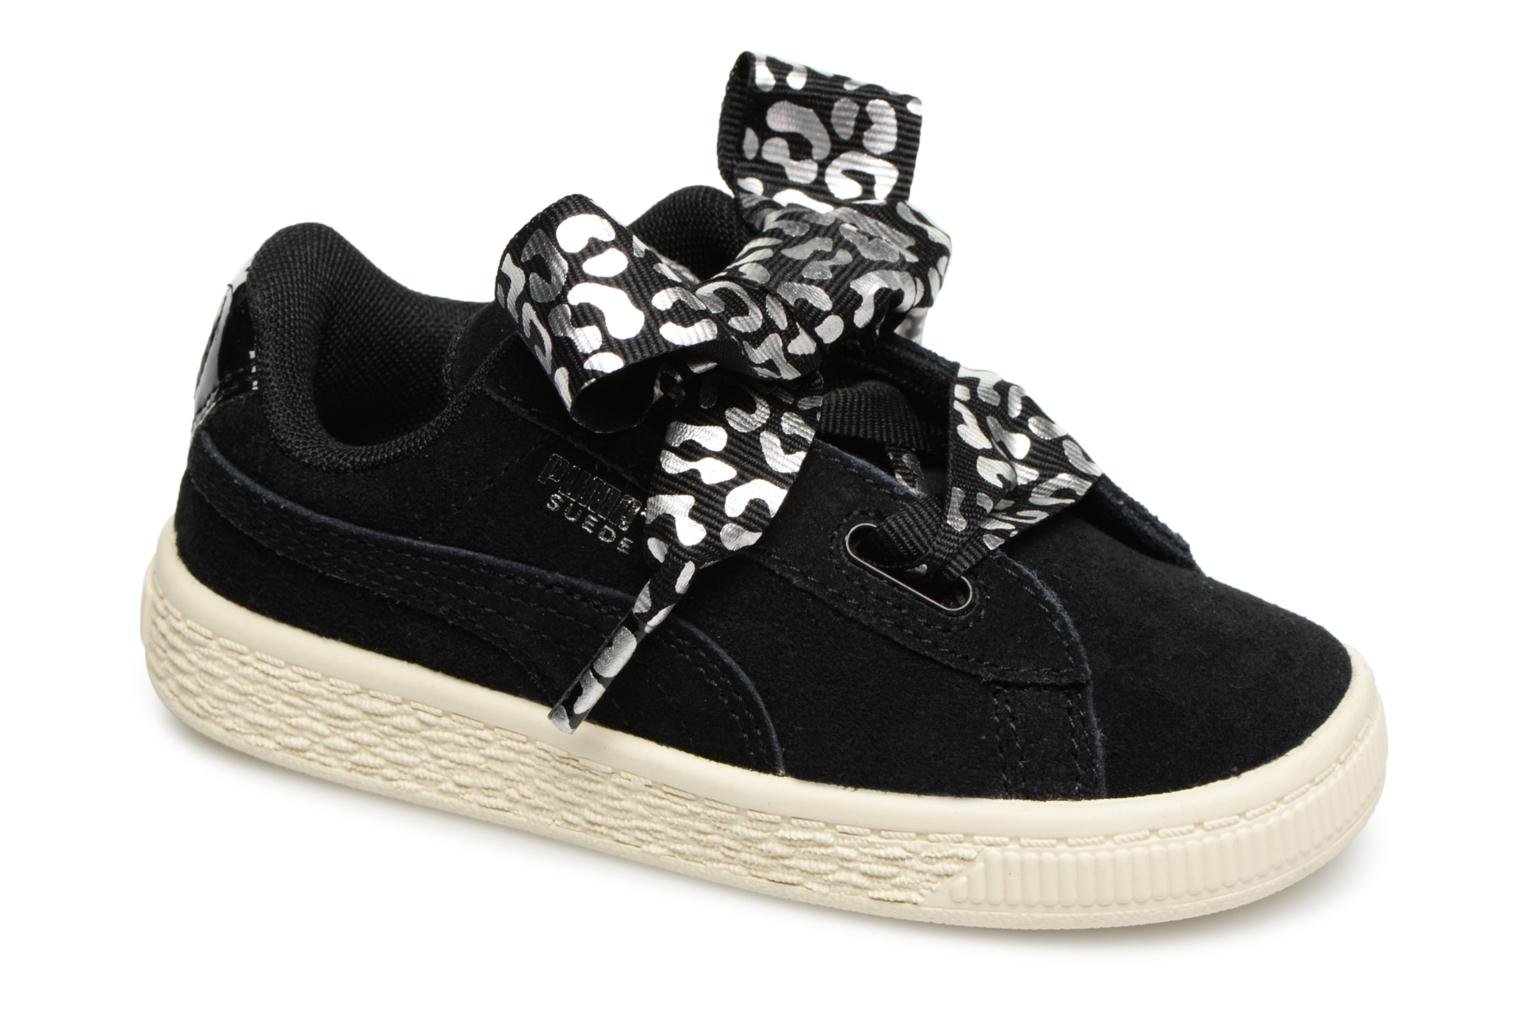 Inf Suede Heart Ath Lux